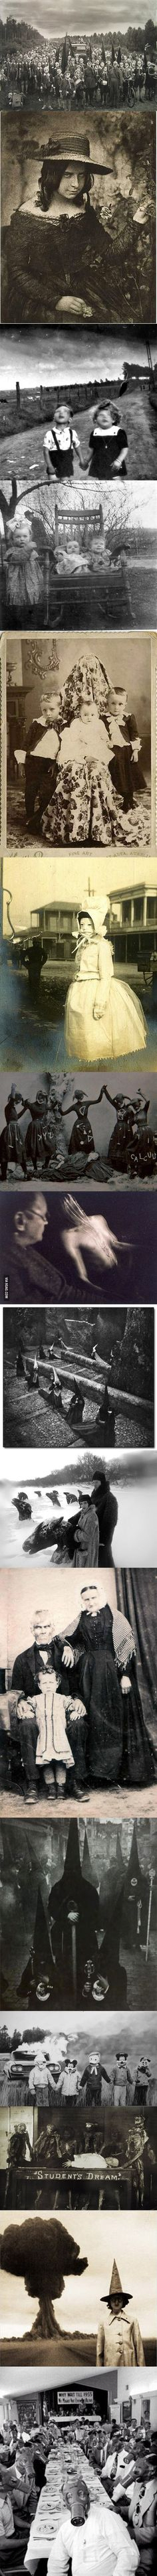 Super creepy old pictures